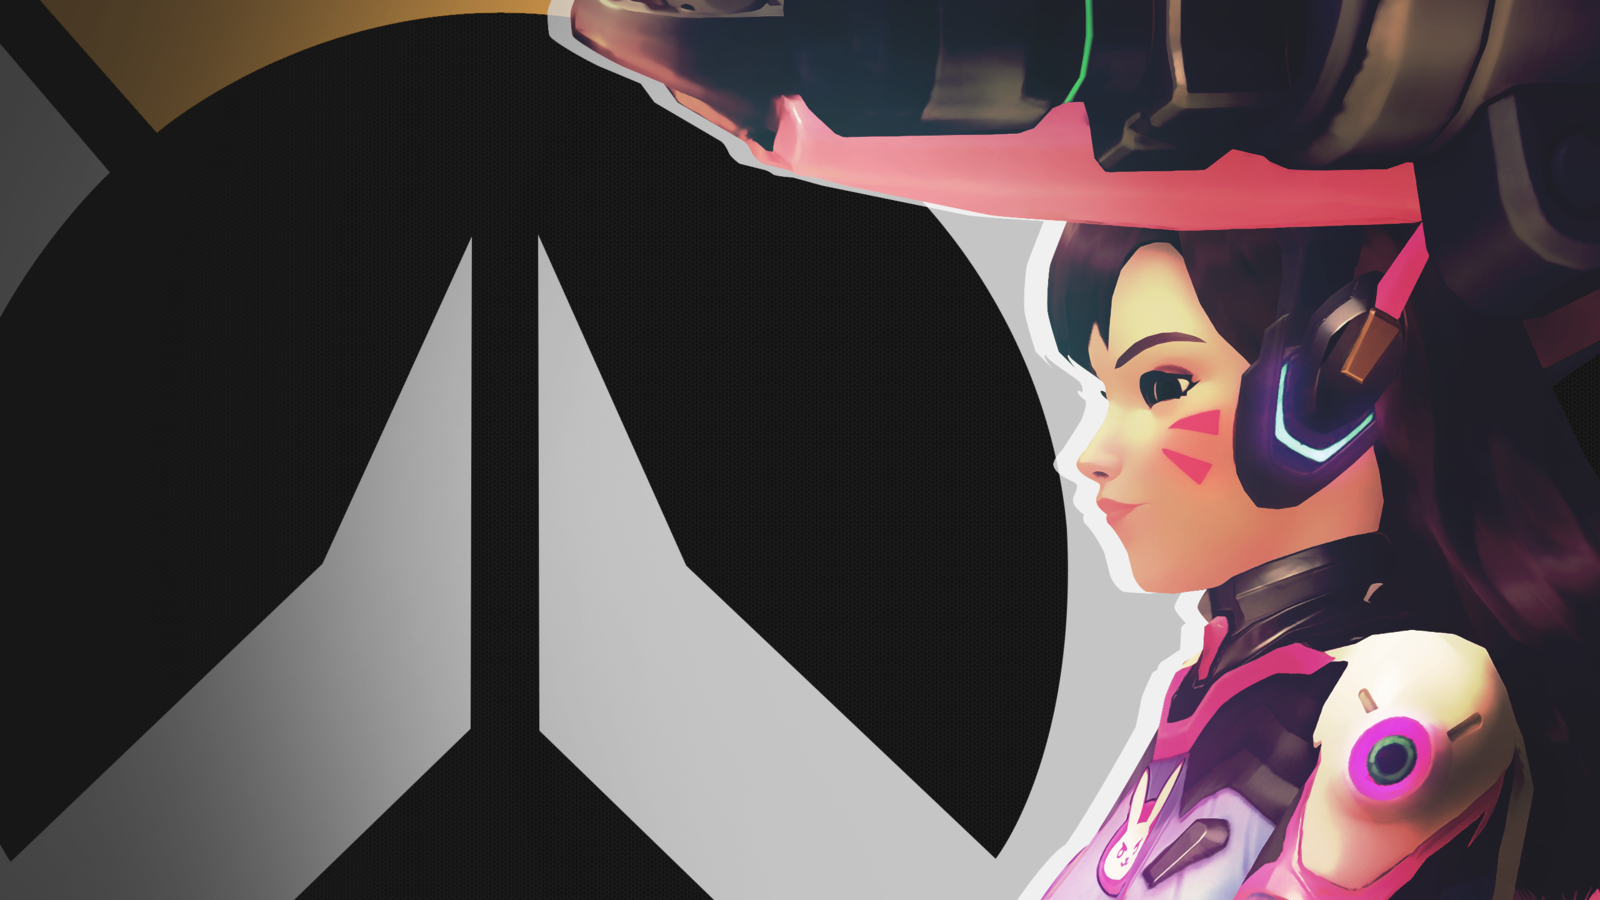 Overwatch clipart dva banner black and white download Overwatch Side Profile Wallpaper - Dva by PT-Desu on DeviantArt banner black and white download